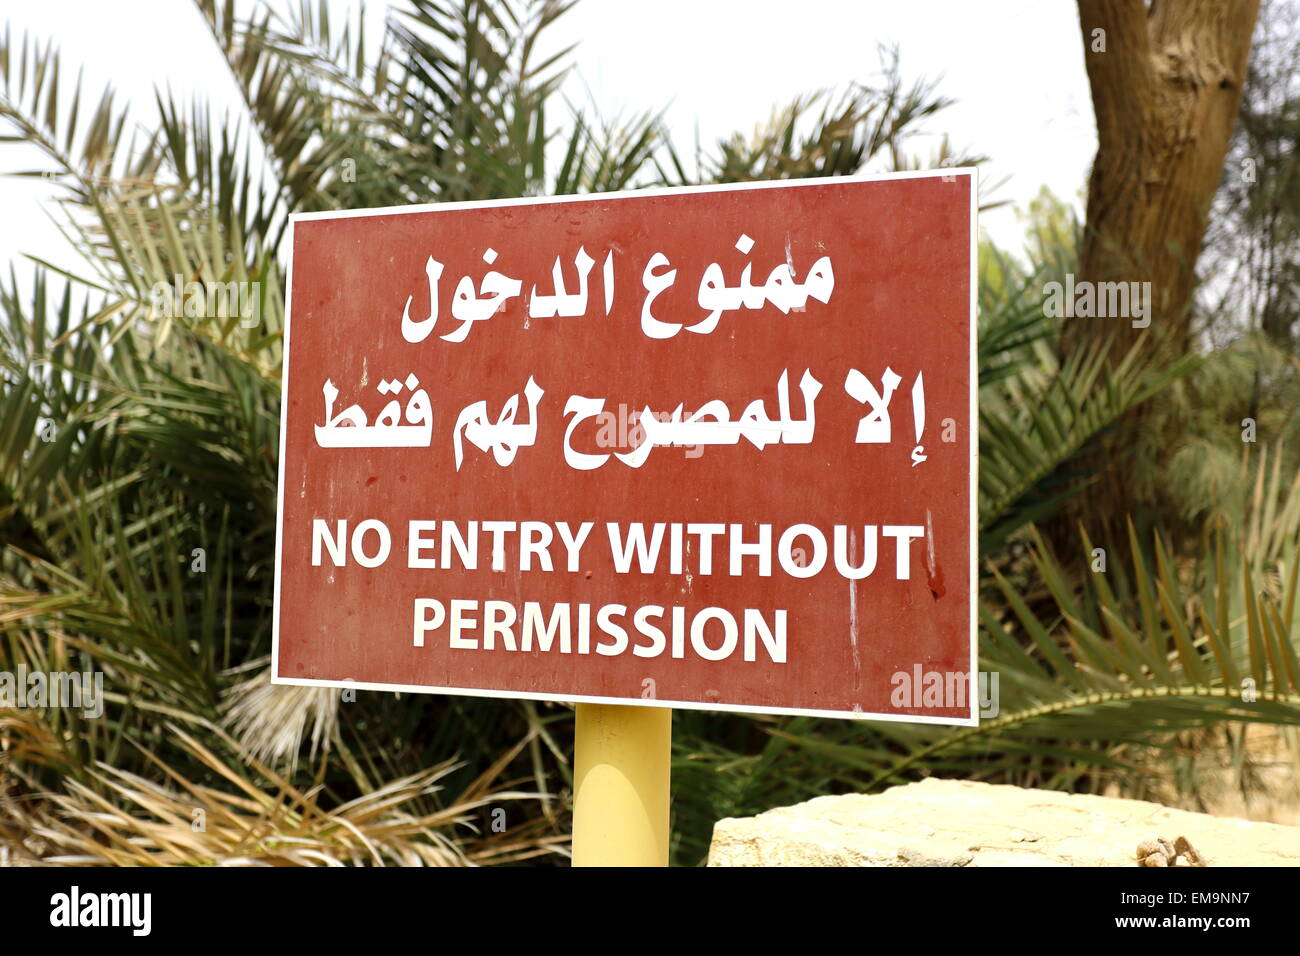 A sign in Arabic and English indicating no entry without permission, Al Areen Wildlife Park, Kingdom of Bahrain - Stock Image